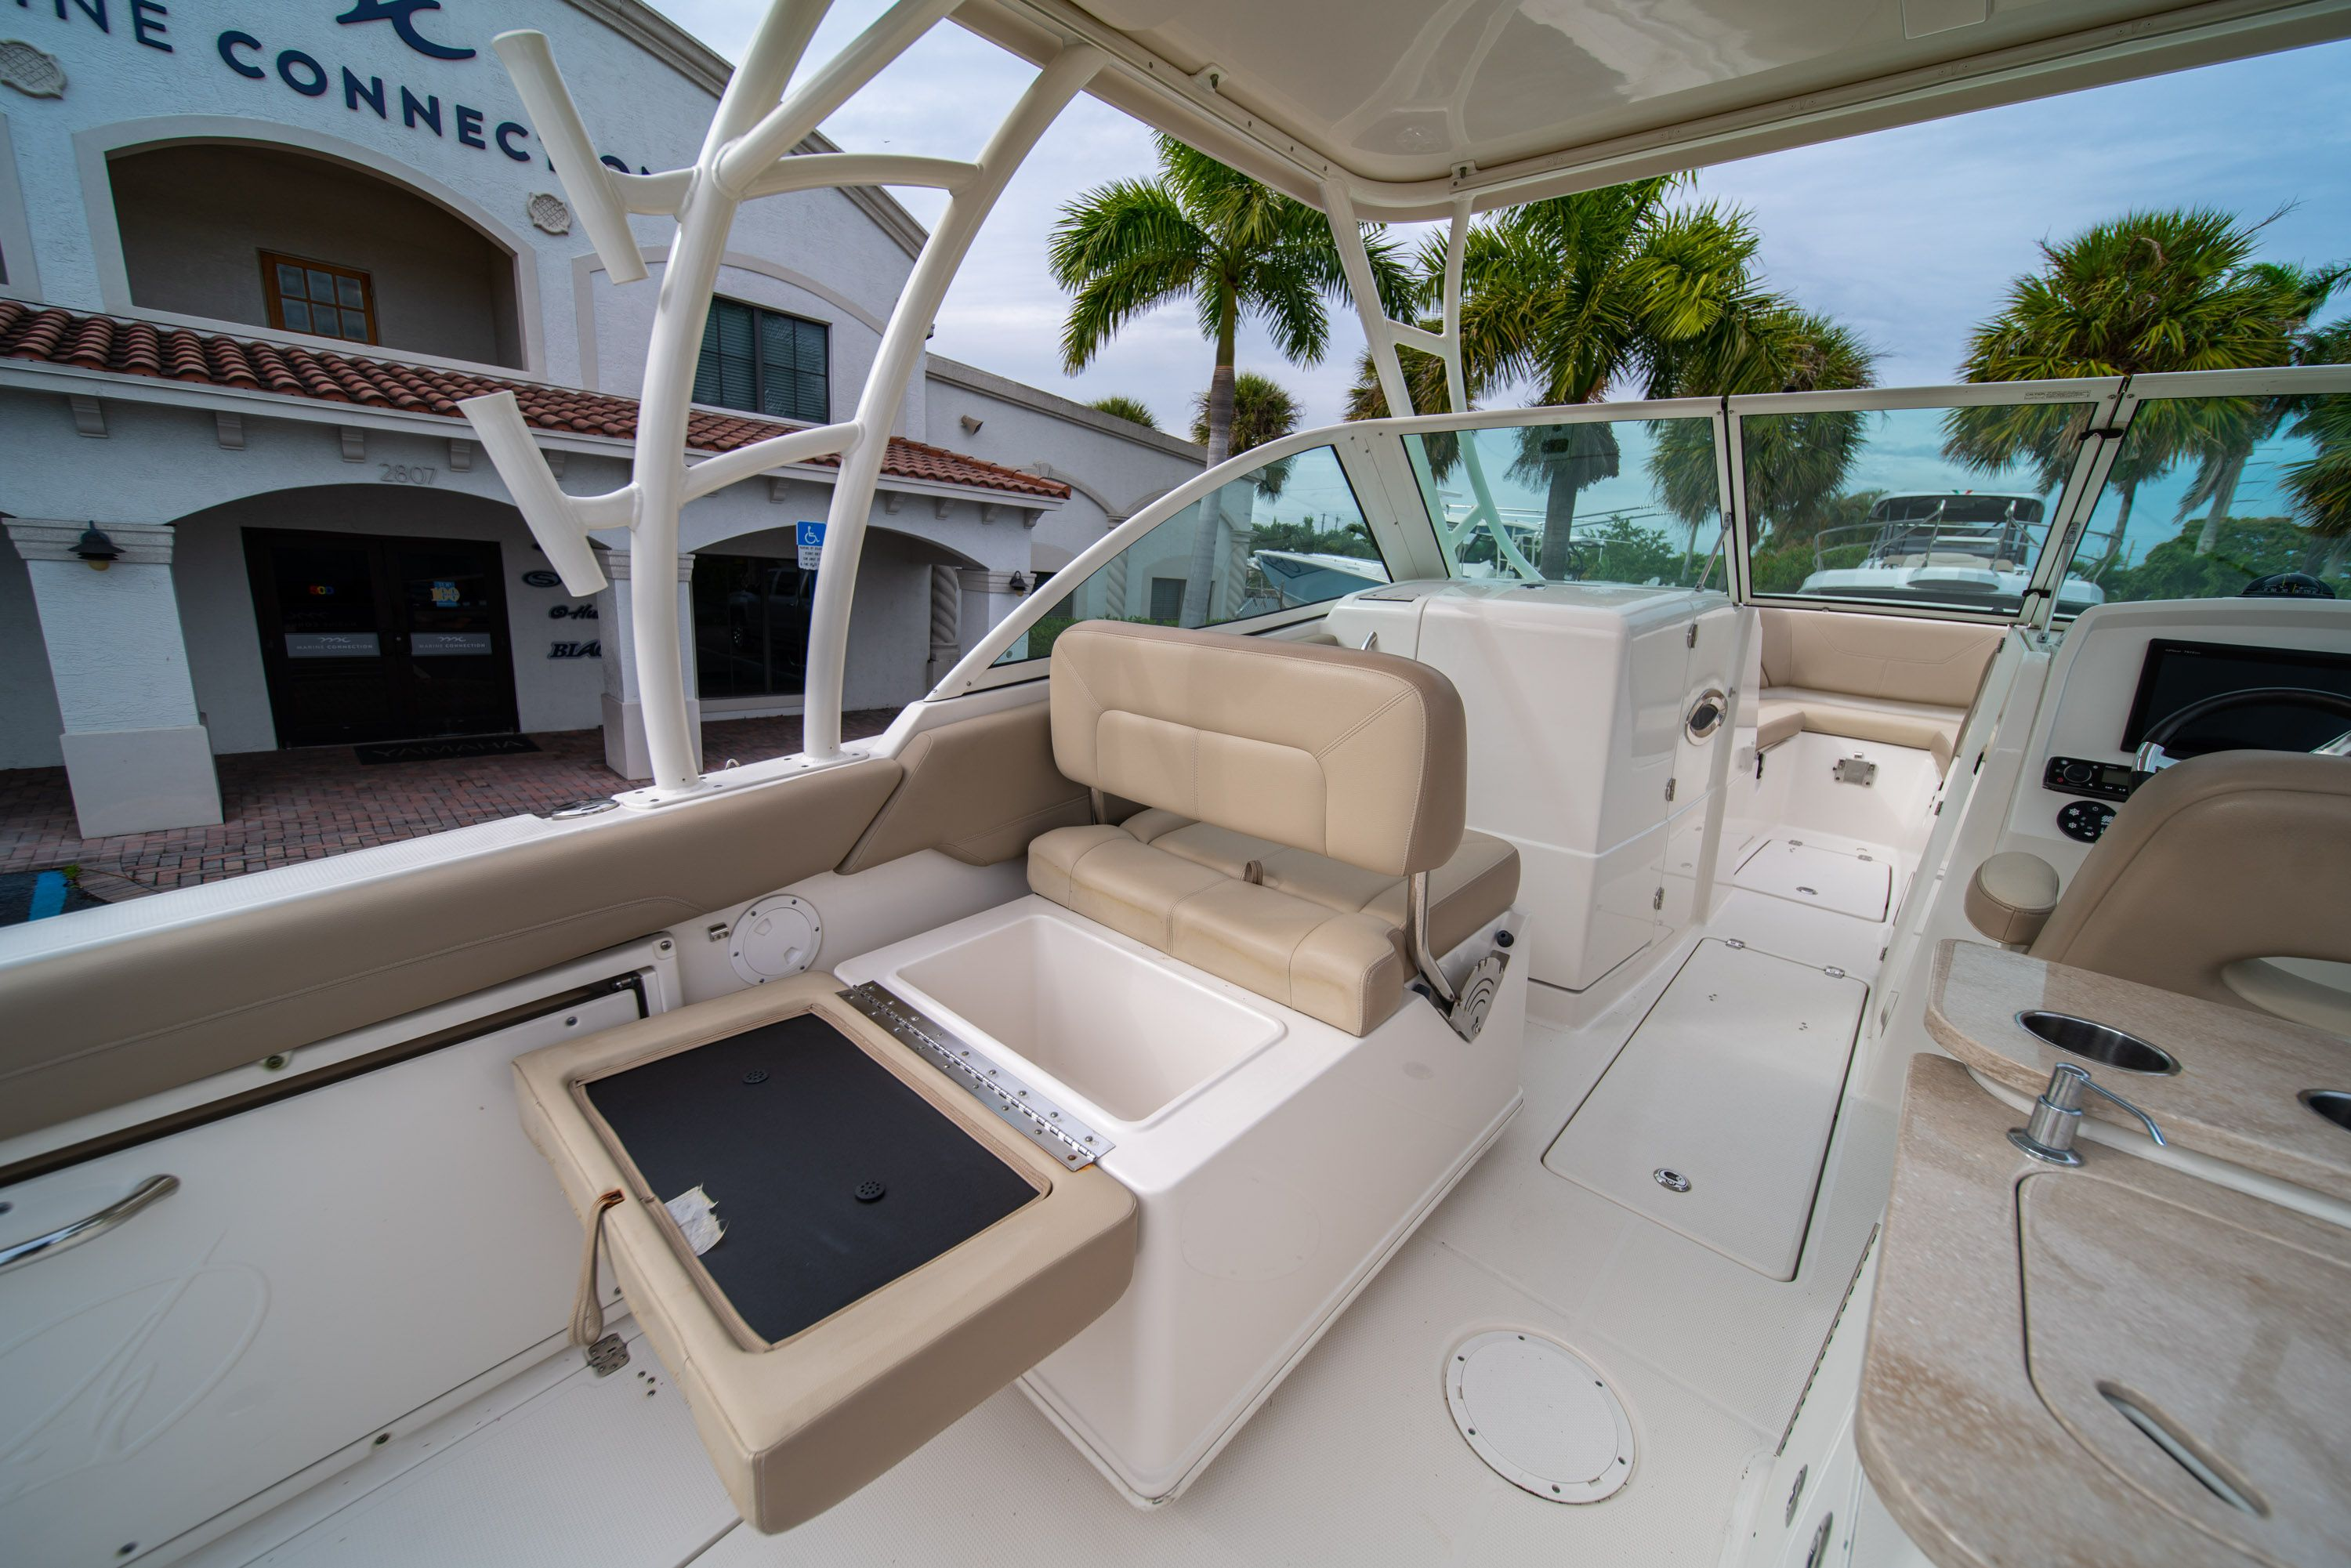 Thumbnail 29 for Used 2017 Sailfish 275 Dual Console boat for sale in West Palm Beach, FL